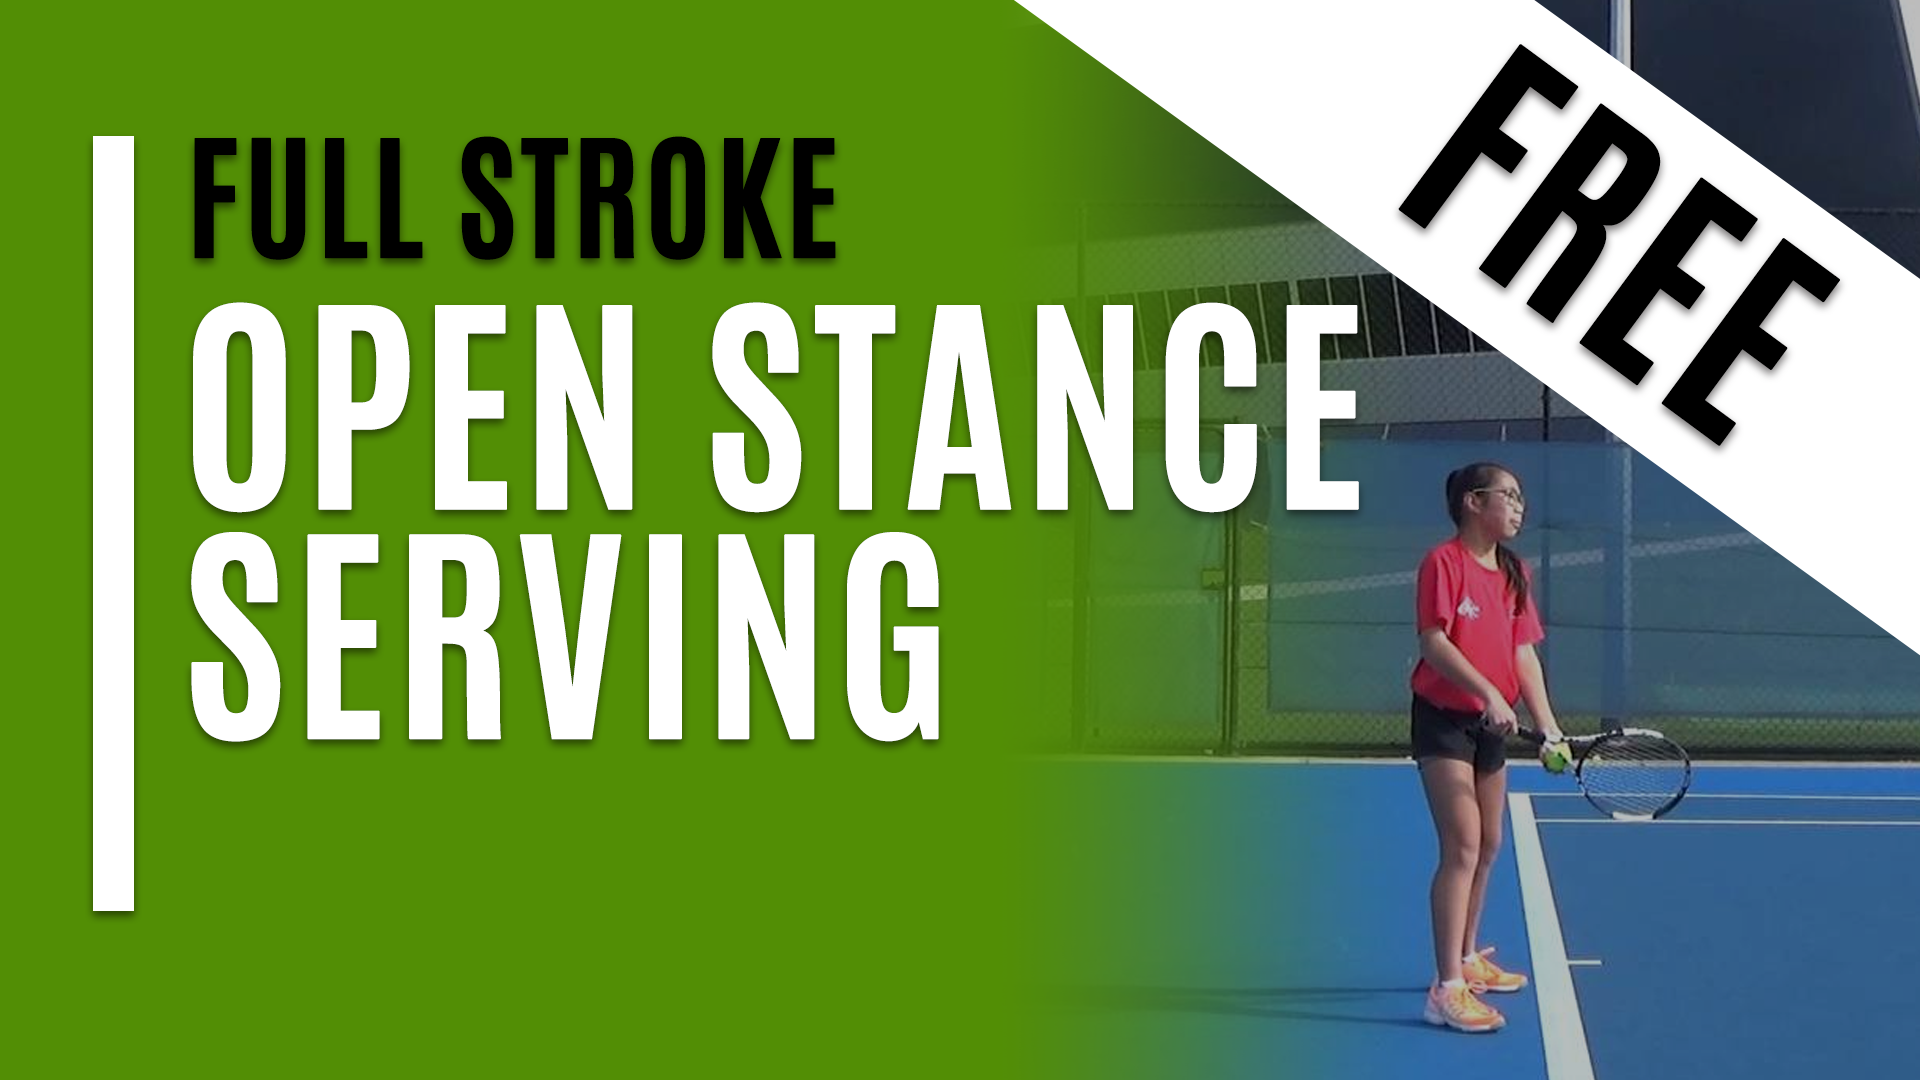 Open Stance Serving